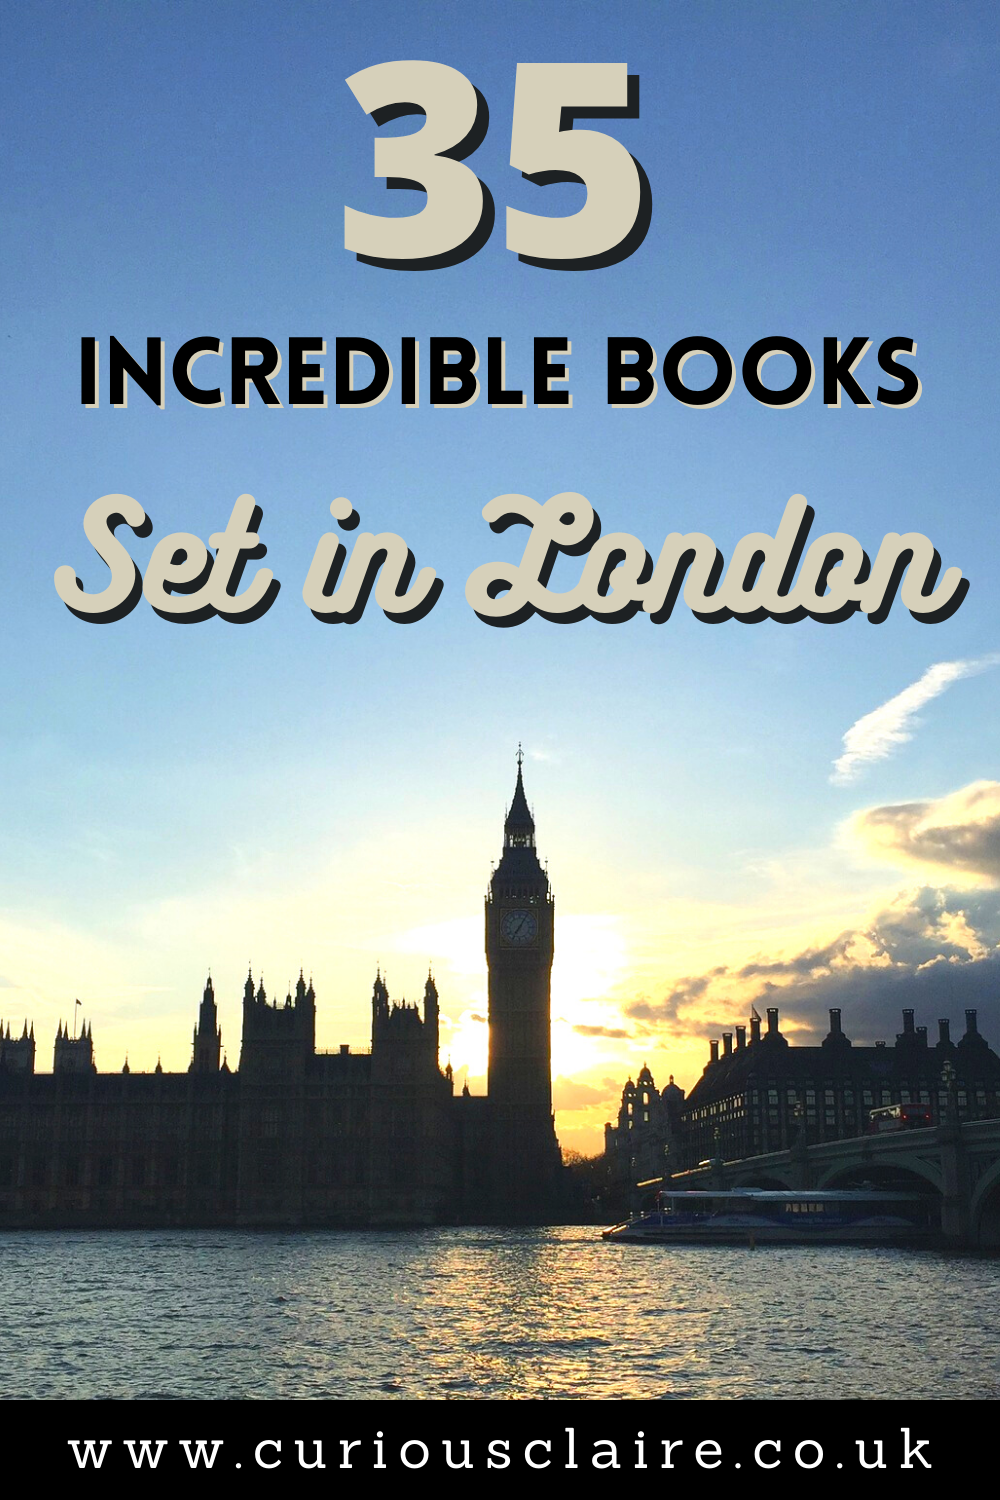 Looking to transport yourself to London from home? These incredible books set in London will have you feeling like you were there in the city | Best Books Set in London | Books to inspire a trip to London | Novels set in London | Romance novels set in London | Thrillers set in London | Books of Films | Books Set in England | Comedy Books set in London | Travel Books | Book Lovers | Best Selling Books #london #travelbooks #europetravel